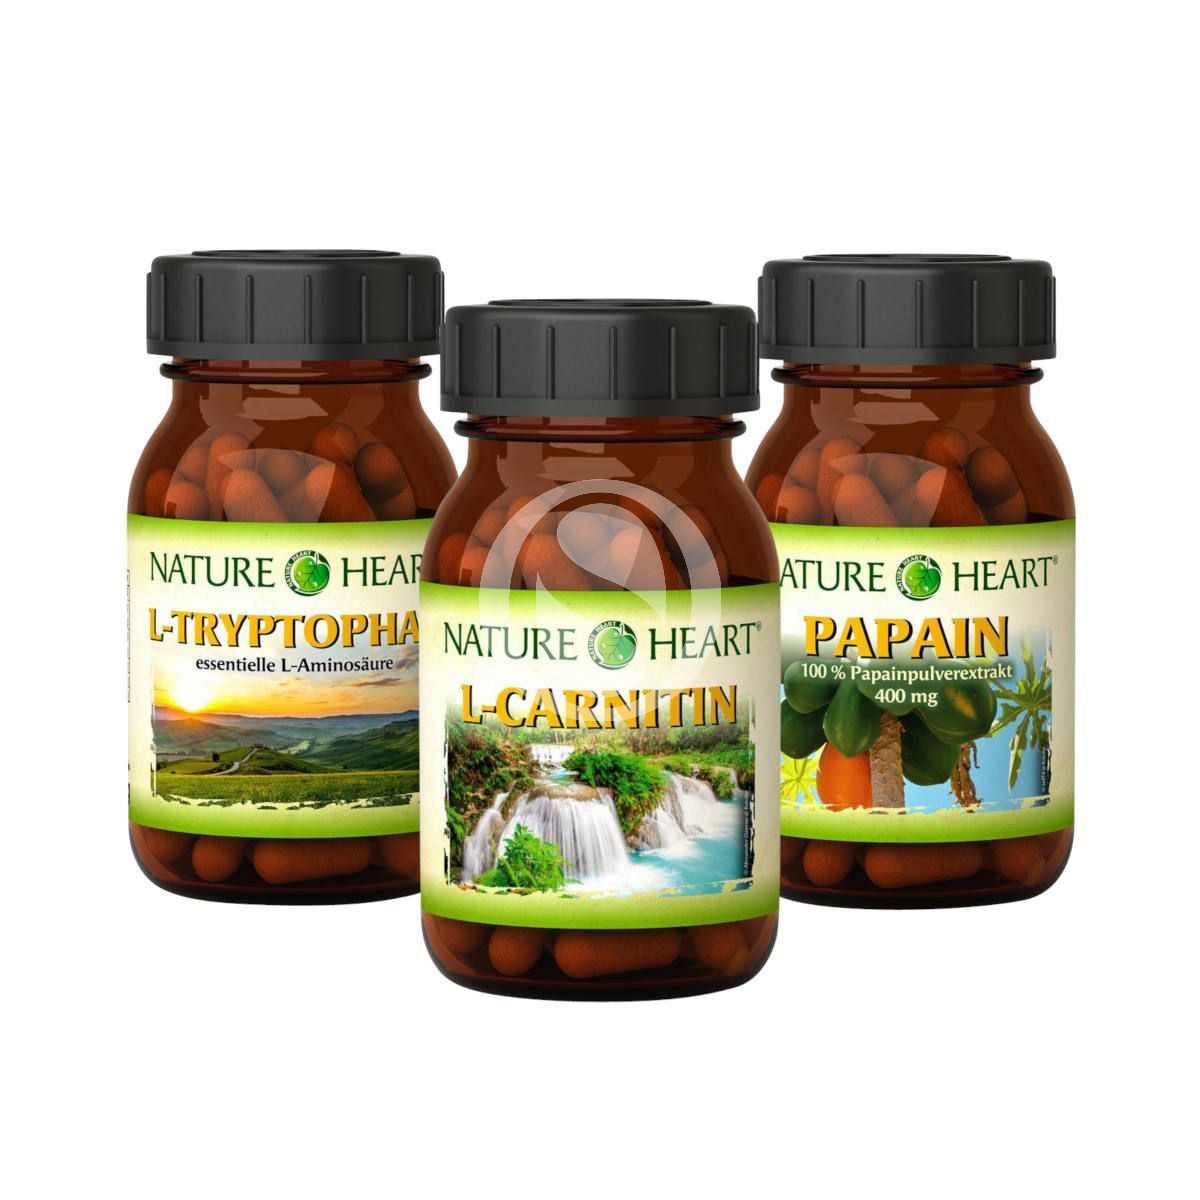 Nature Heart Set FATBURNER